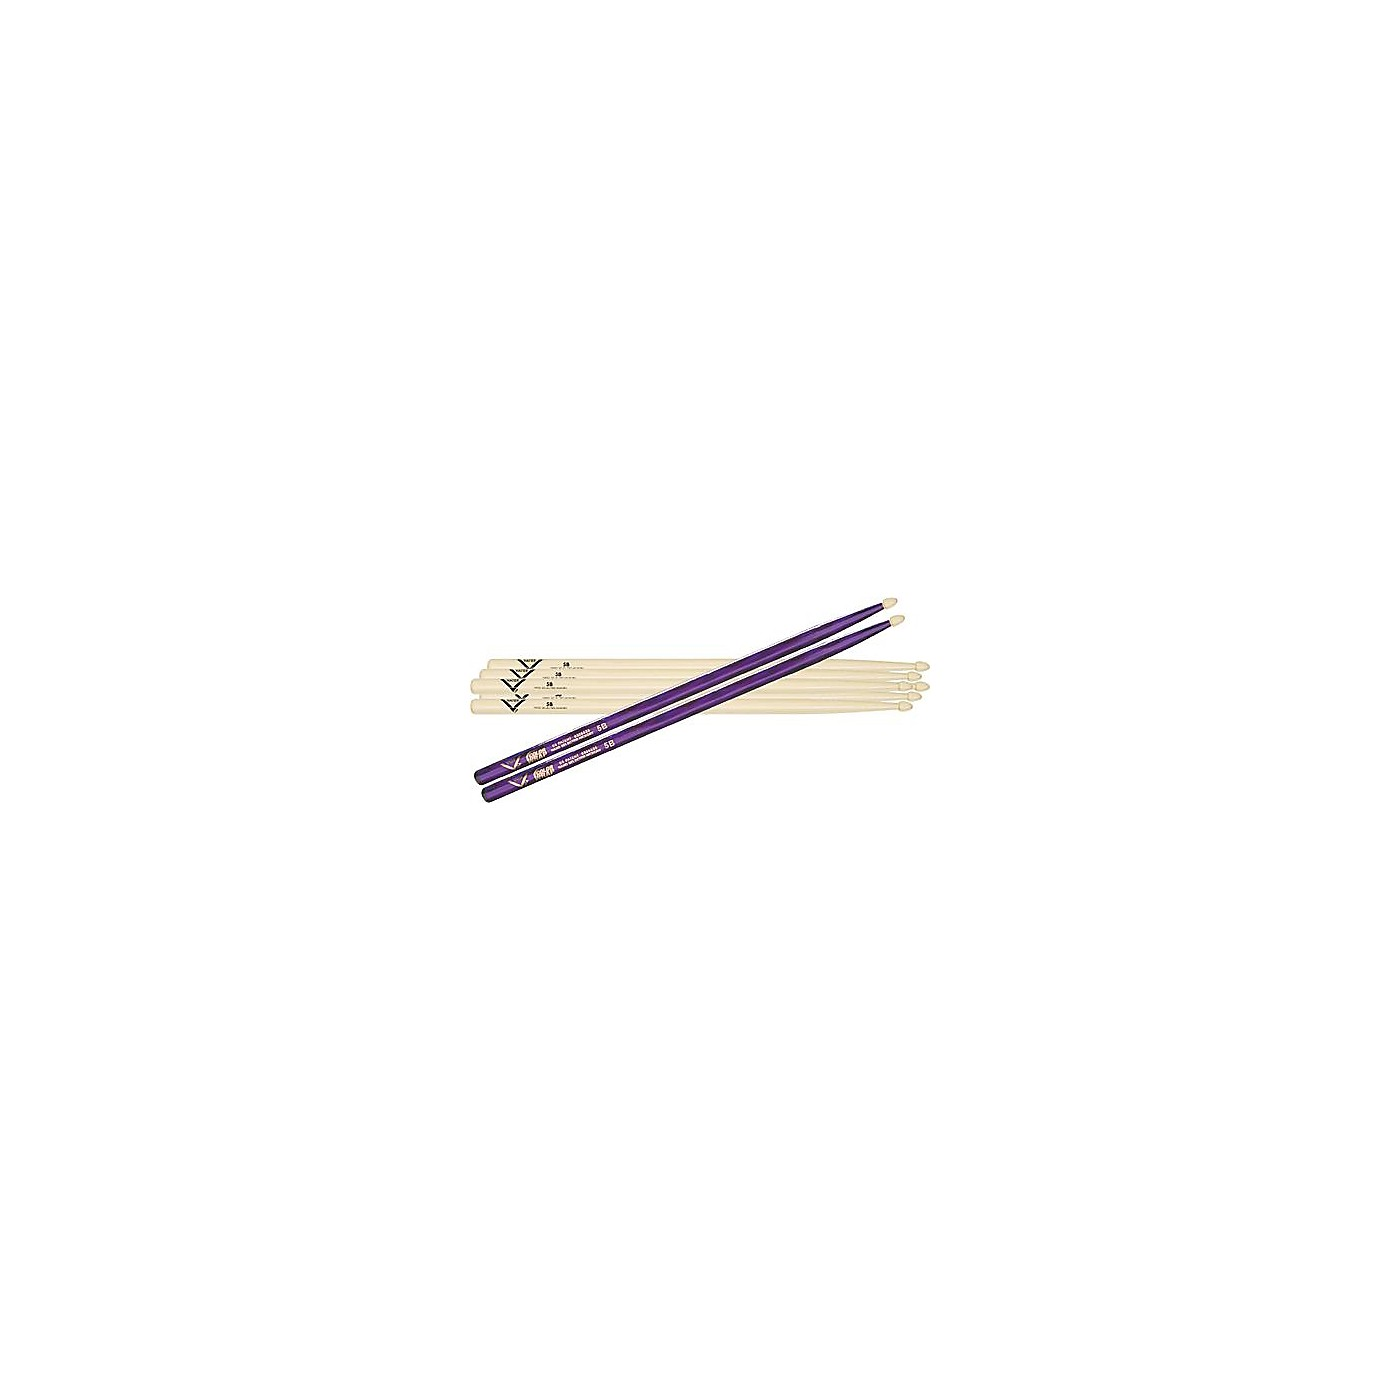 Vater 5B Hickory Wood-Tip Drumstick 3-Pack with Free Color Wrap Pair thumbnail